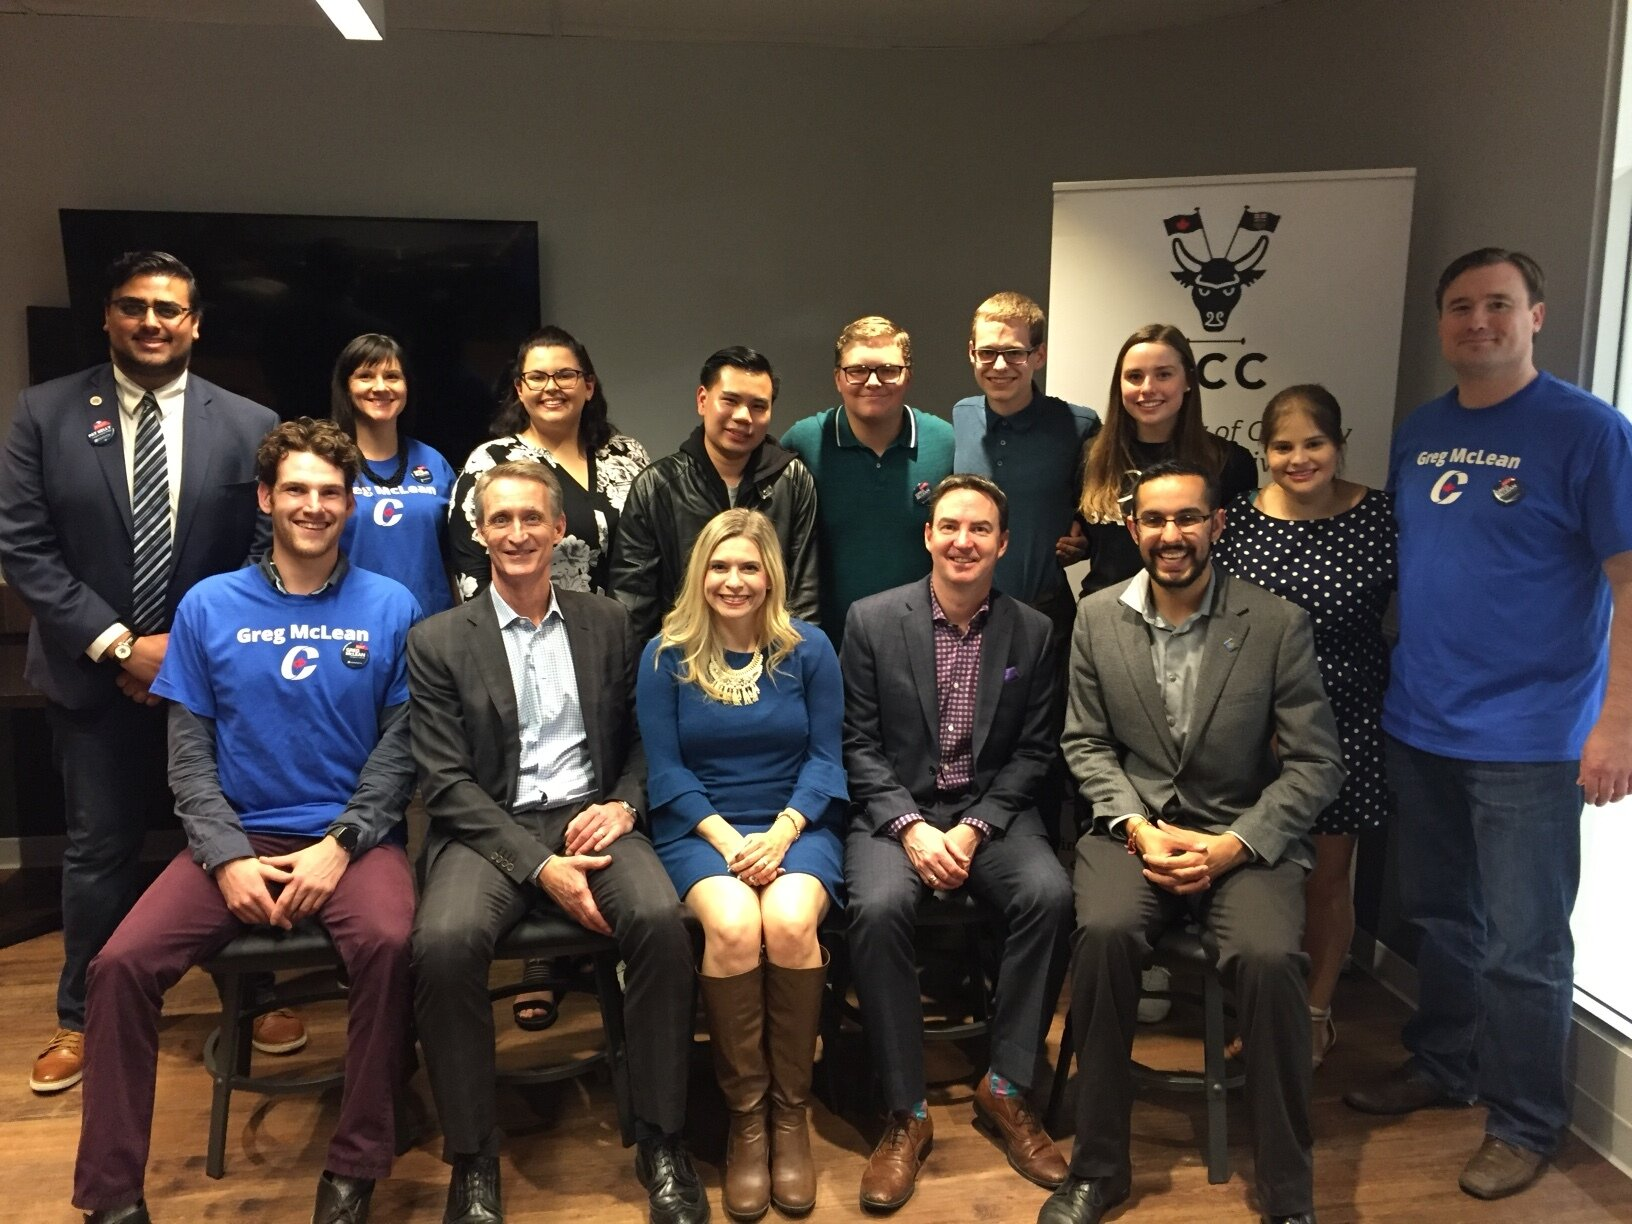 I went to the University of Calgary Conservatives' Big Blue Tent Event on Friday afternoon. Also in the front row there is MP Stephanie Kusie (Calgary Midnapore) and MLA Jason Copping (Calgary-Varsity). And a great time was had by all!